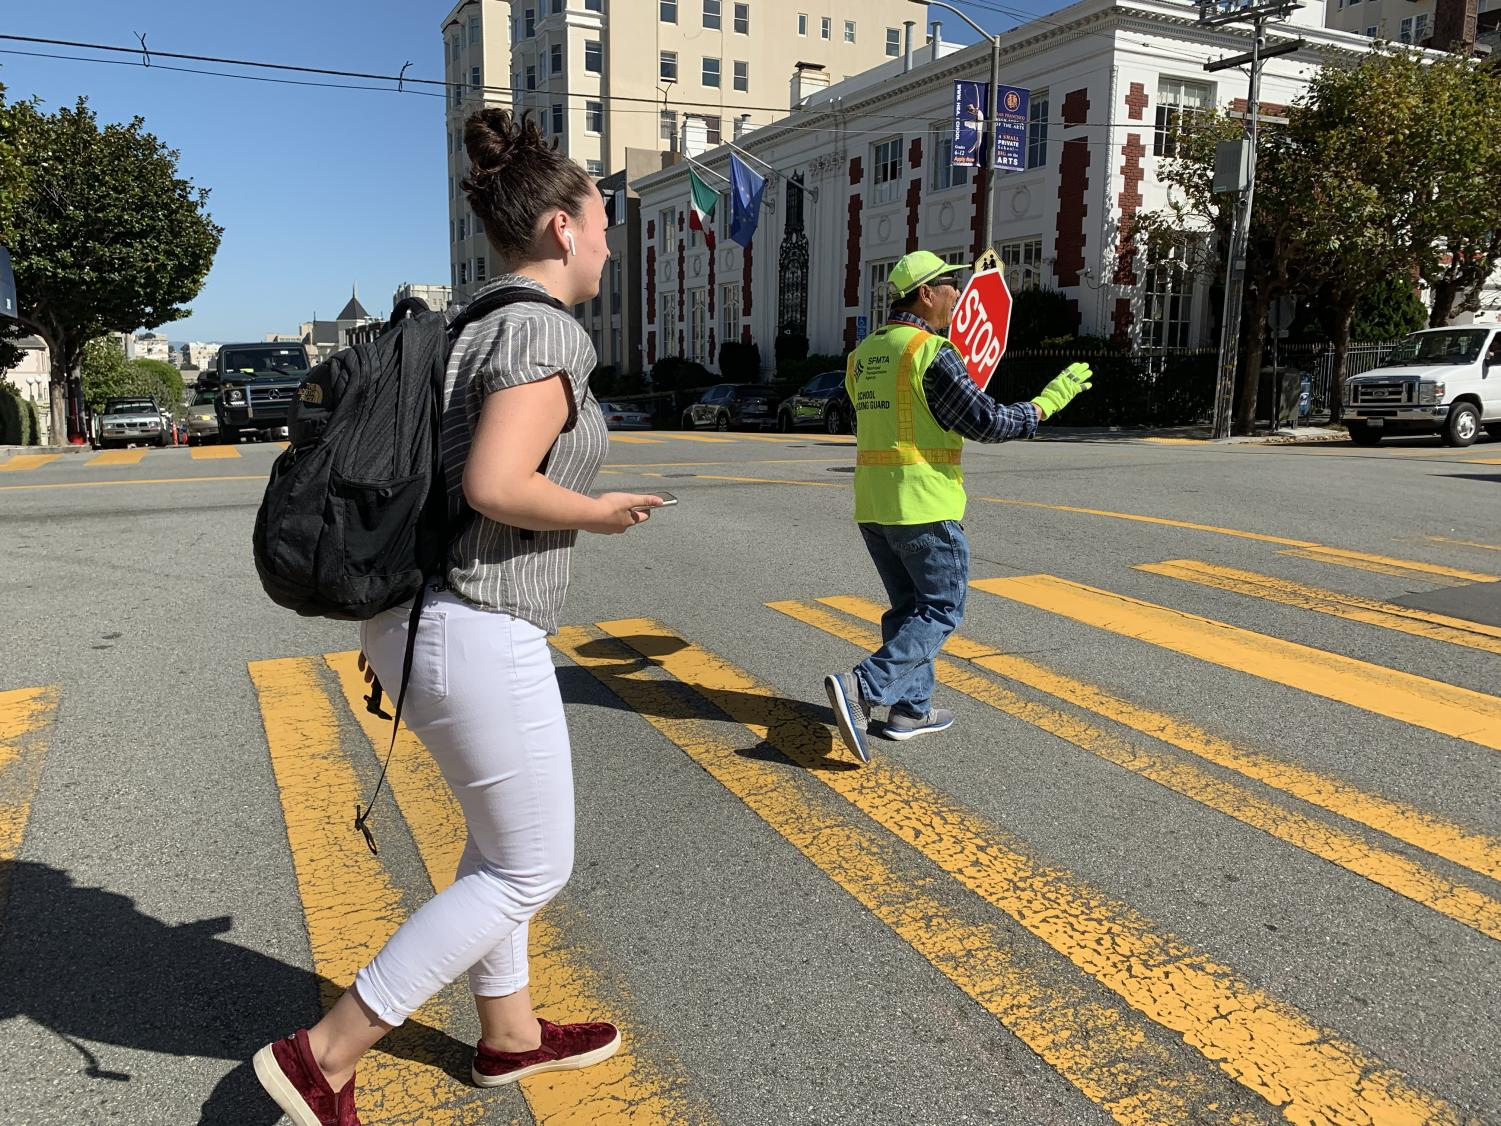 Senior Dena Silver crosses the intersection of Broadway and Webster streets with the help of a crossing guard. Traffic commissioners work during drop-off and pick-up to ensure safety.